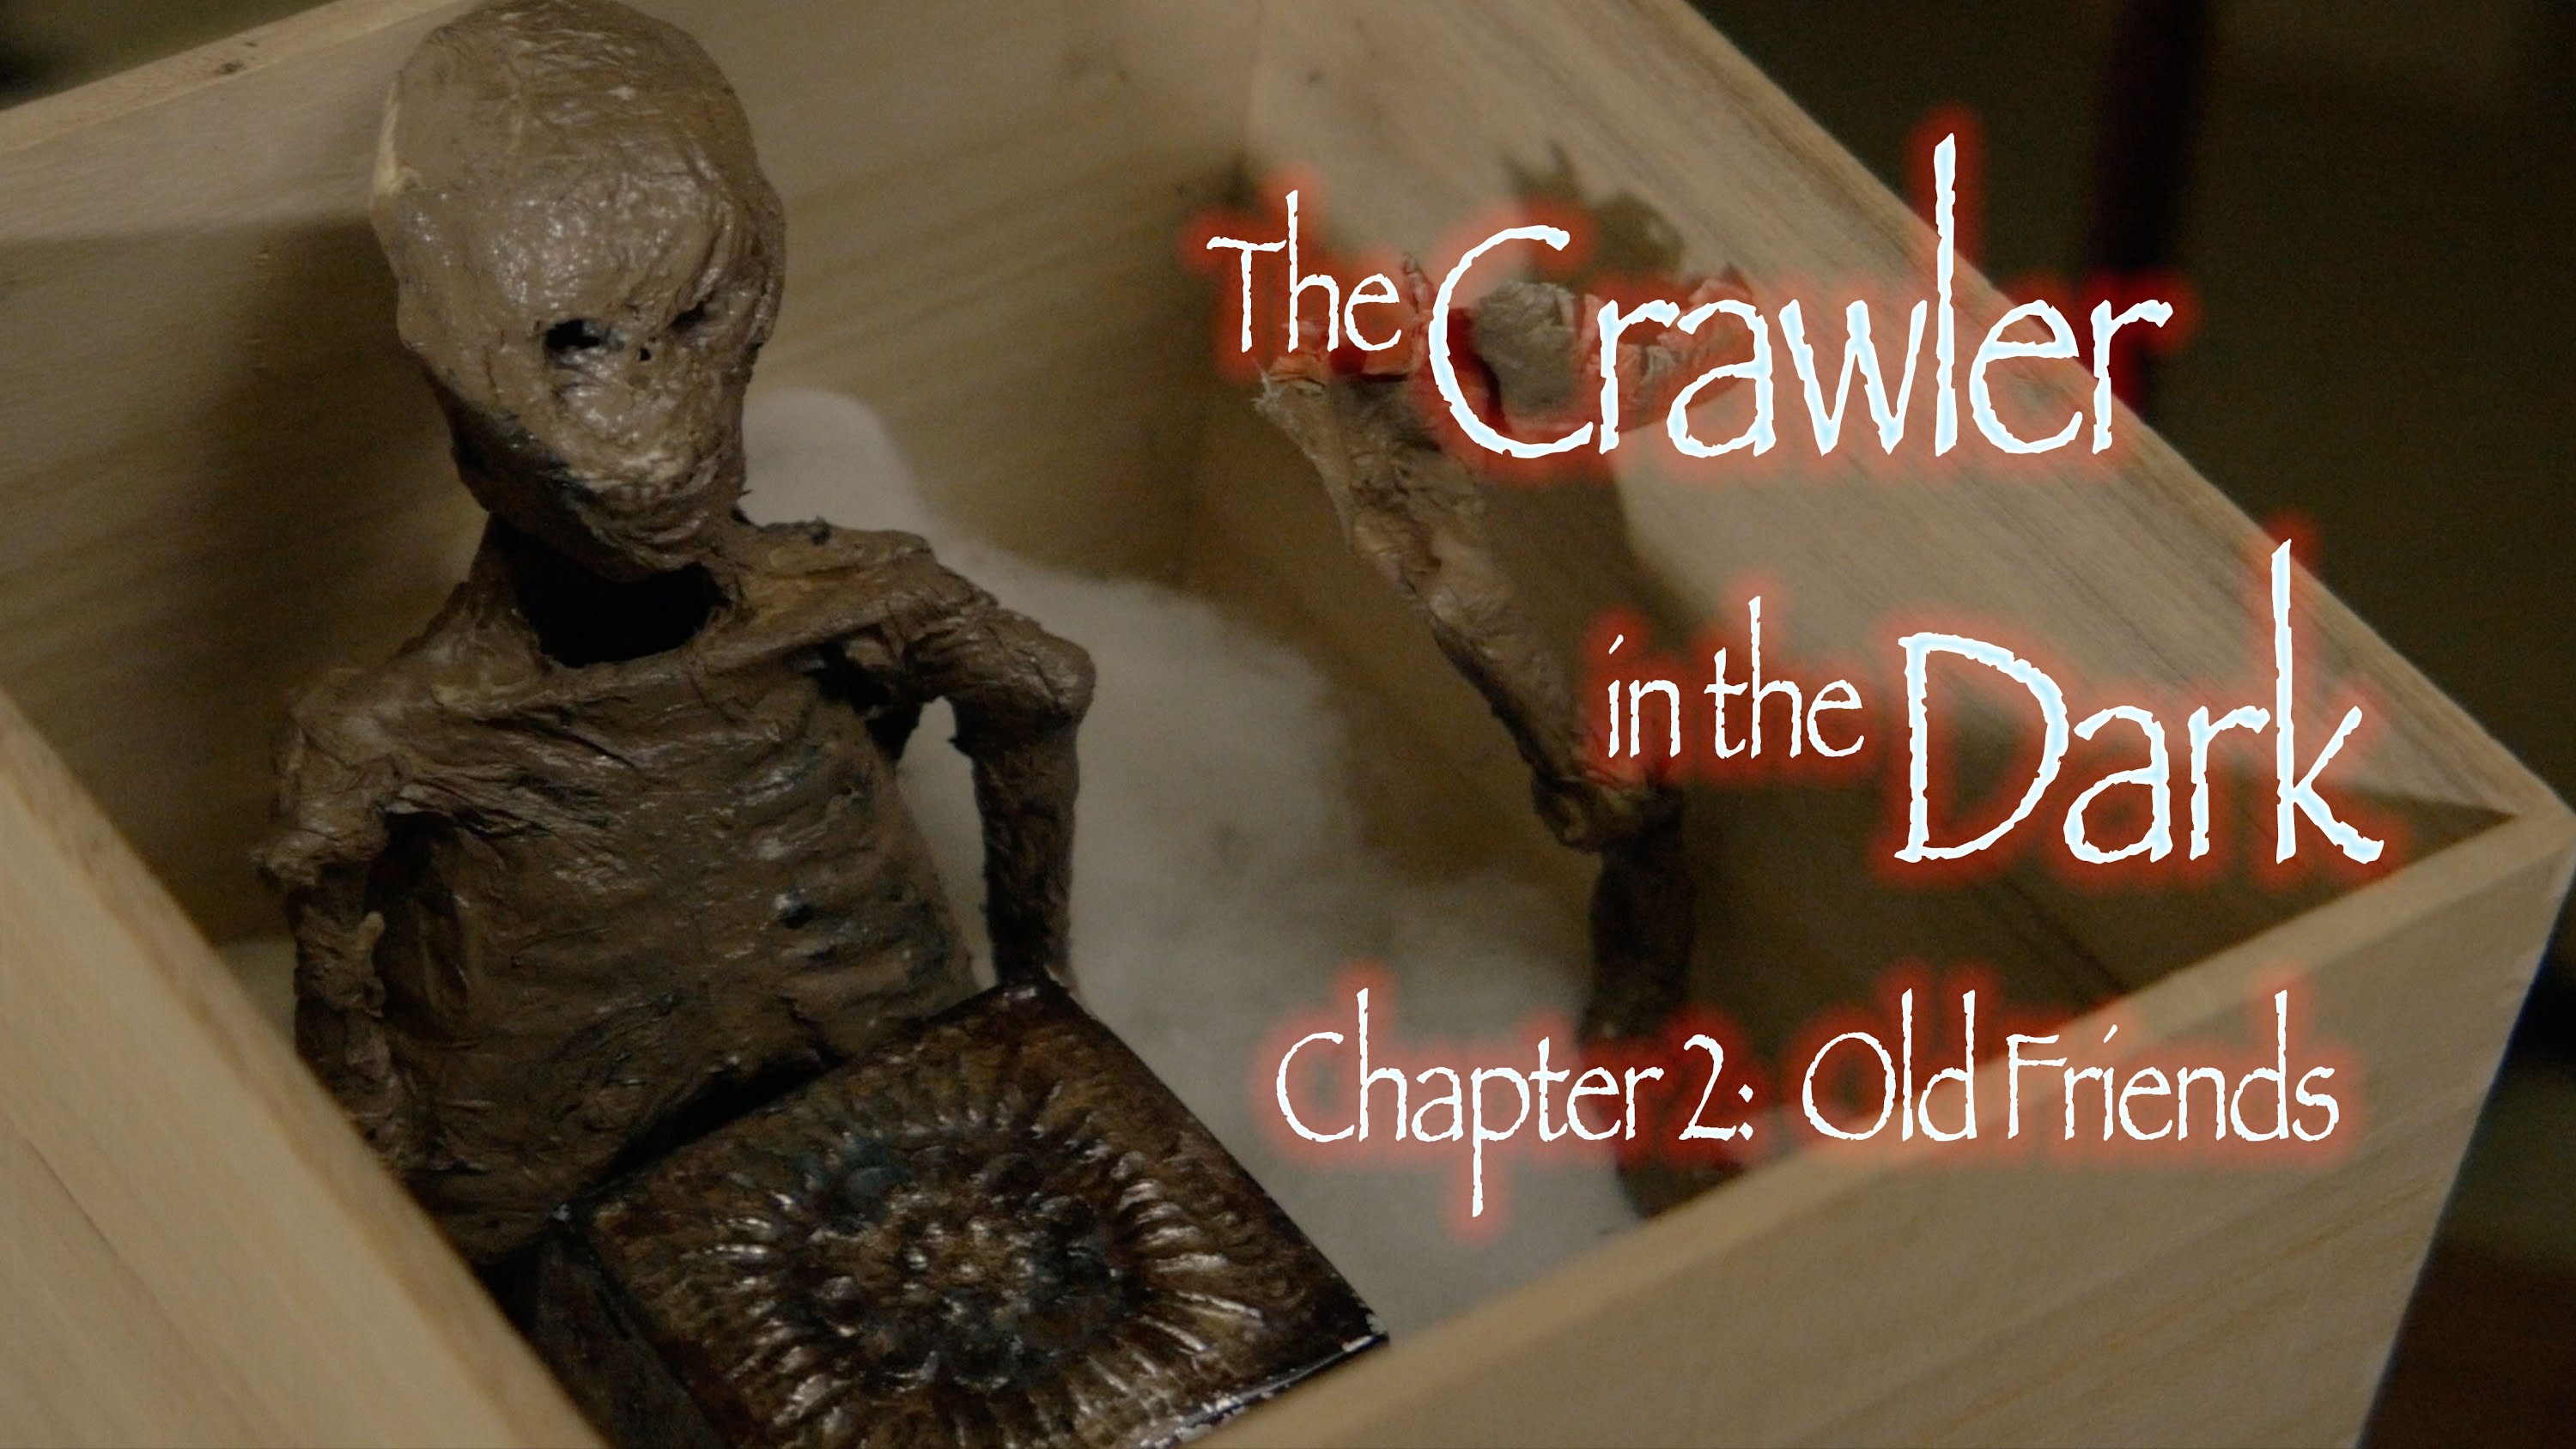 THE CRAWLER IN THE DARK